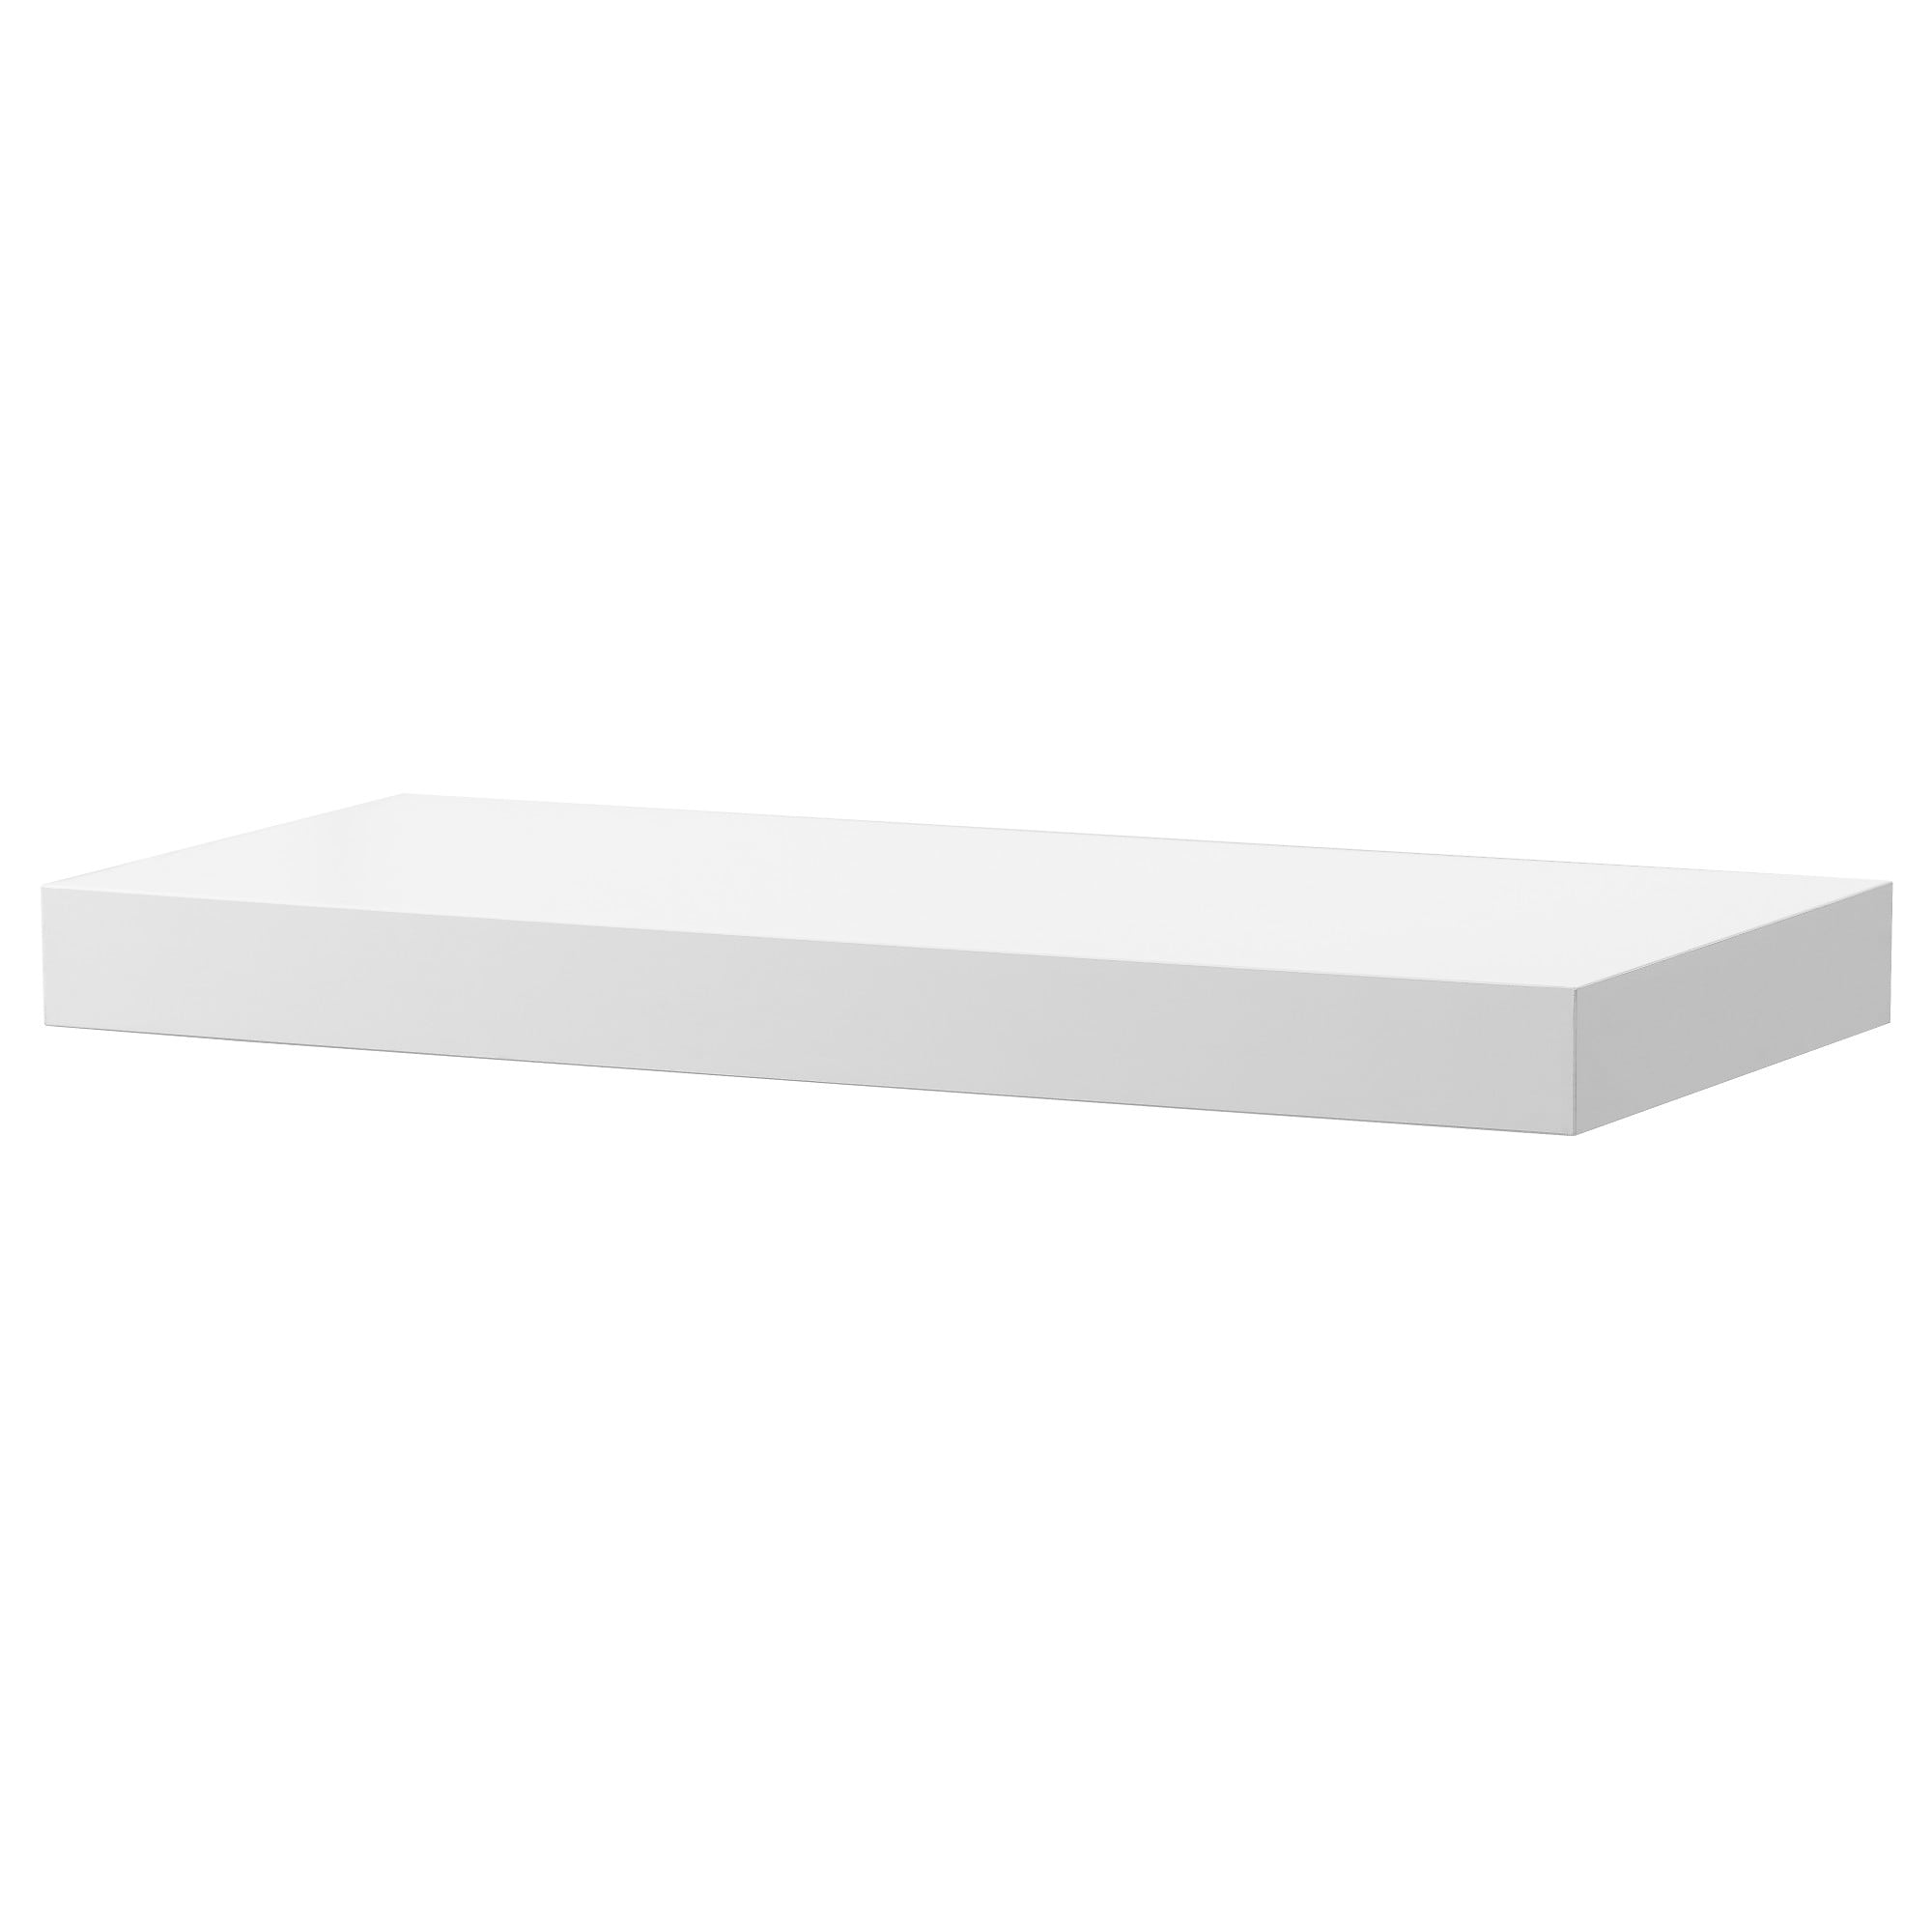 floating shelves wall shelf brackets ikea lack white high gloss black standard height space between counter and cabinets slotted metal ture canadian tire tile app vanity small